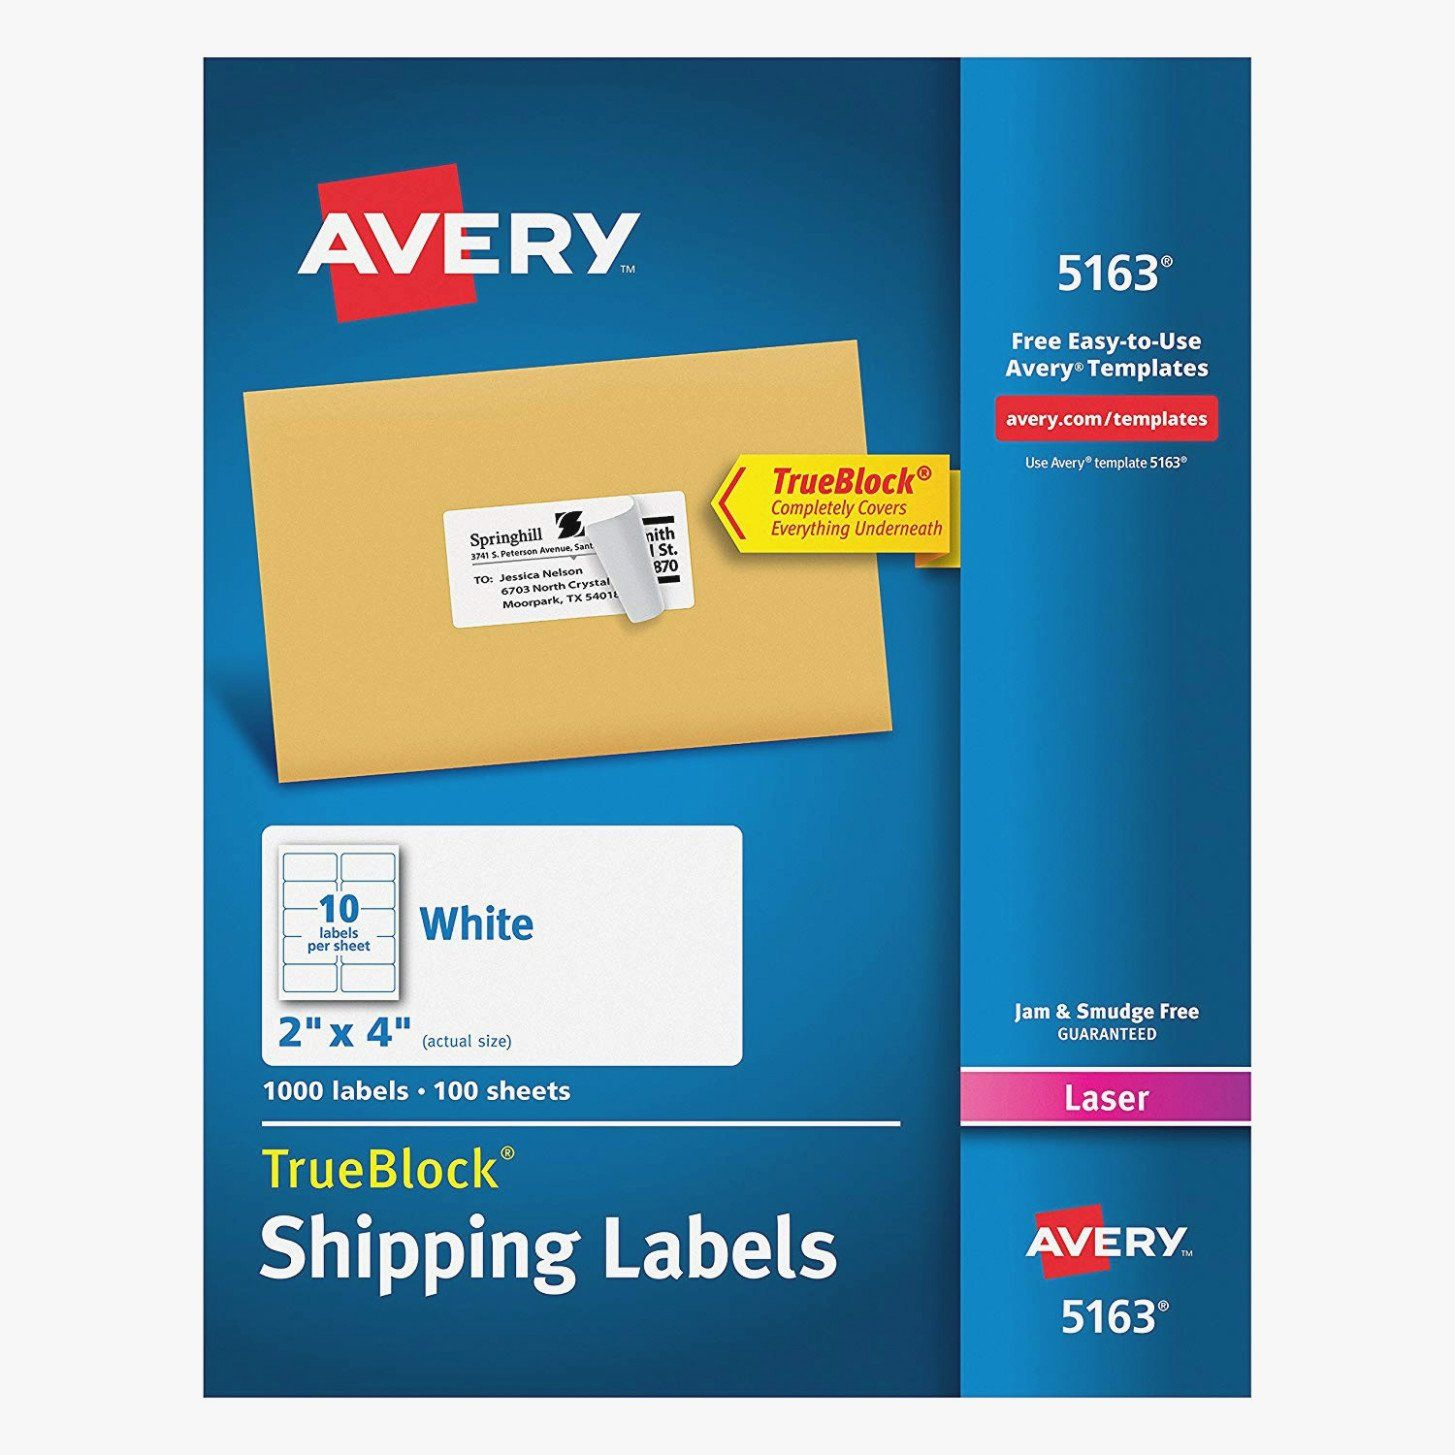 Avery Shipping Labels 5163 Template Fresh Here S What No E Tells You About Avery Avery Shipping Labels Avery Labels Label Templates